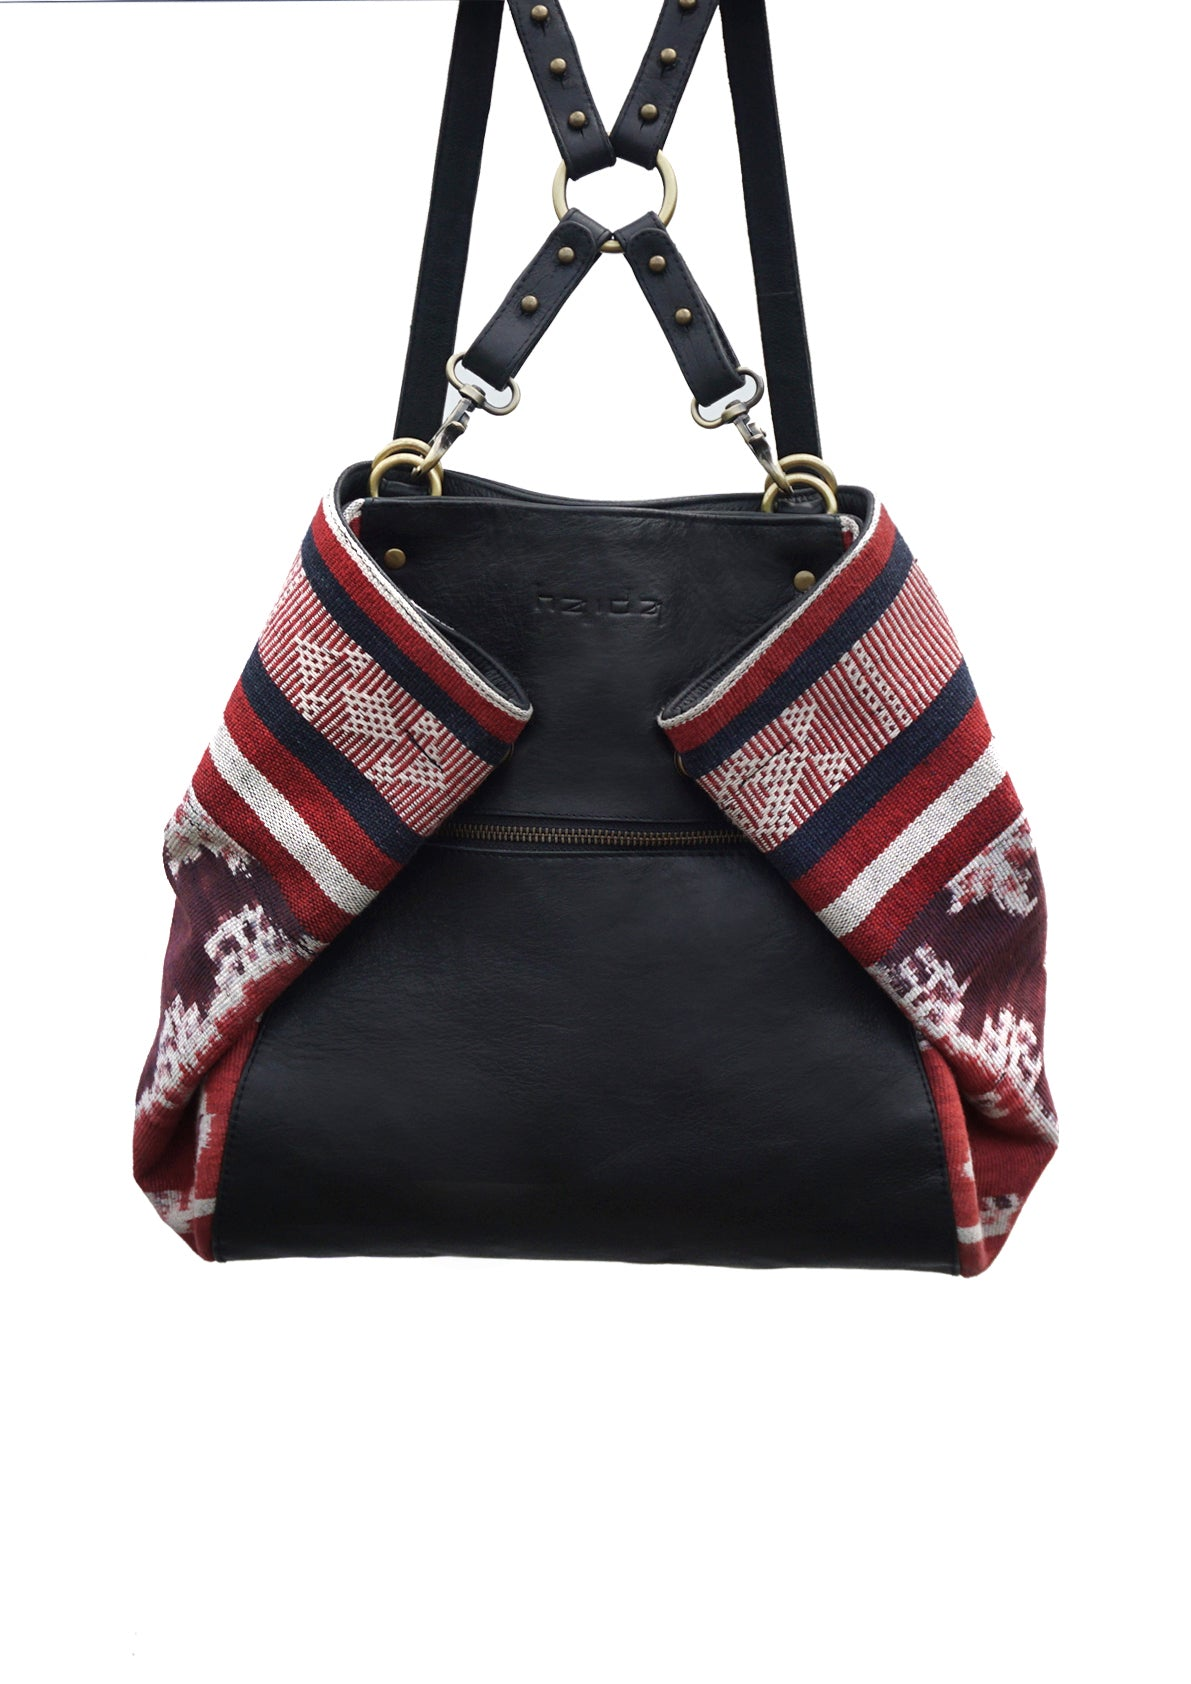 Charlie The Versatile Backpack reversible Tote of Haida Co. the Ethical Fashion Brand